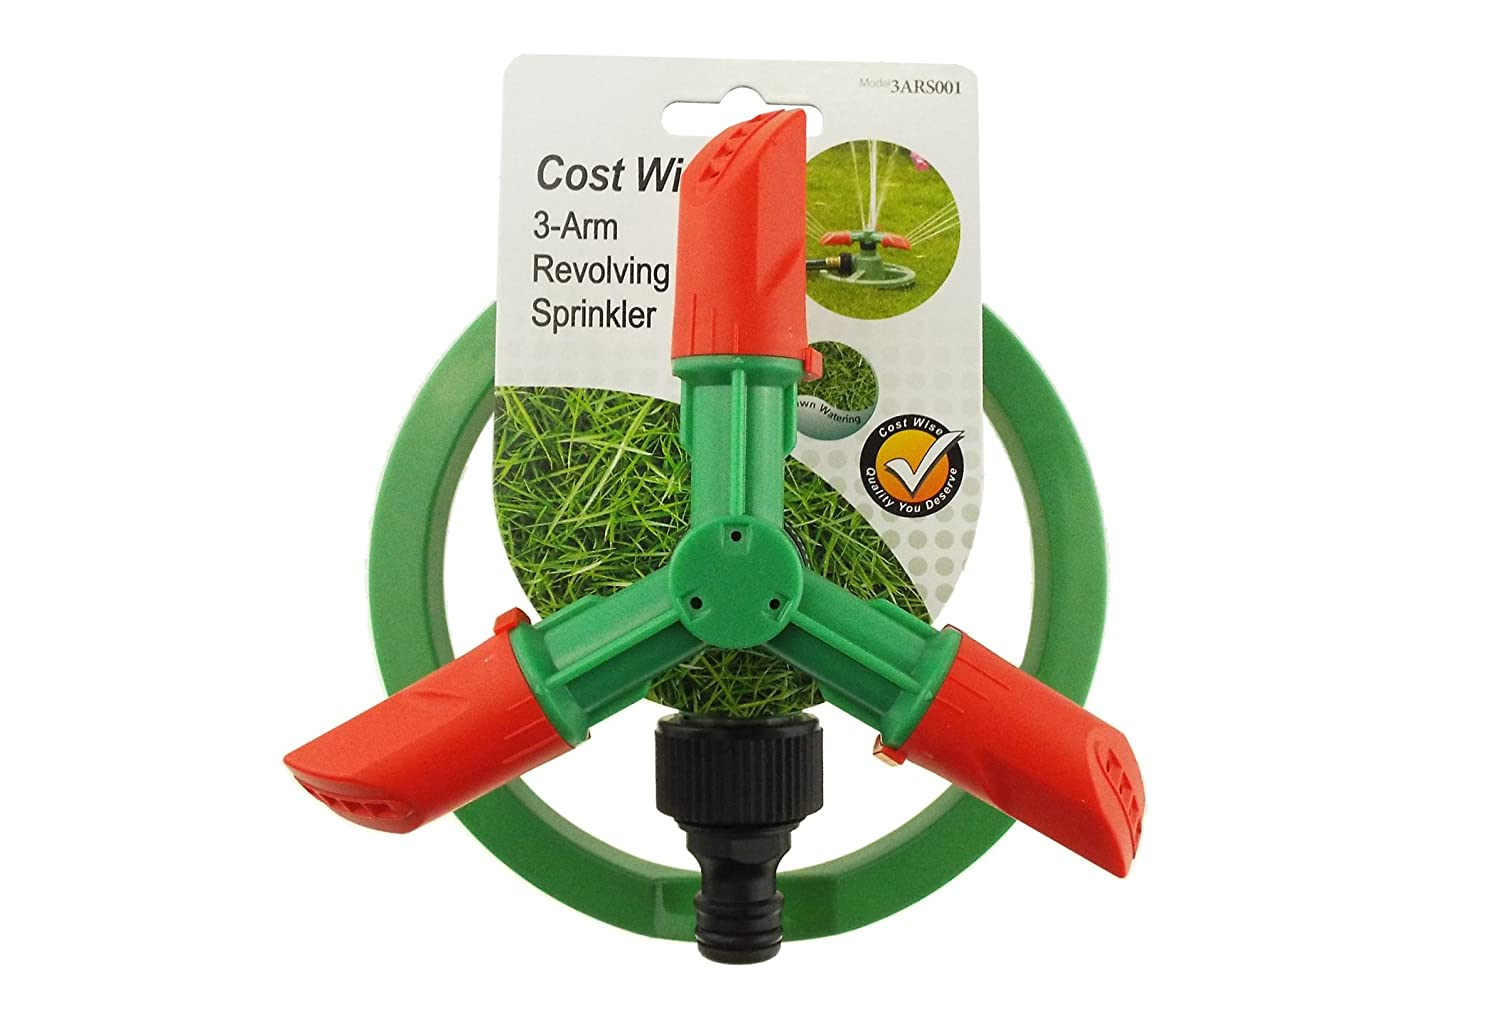 3 arm lawn sprinkler,garden rotating sprinkler,hozelock compatible sprinkler